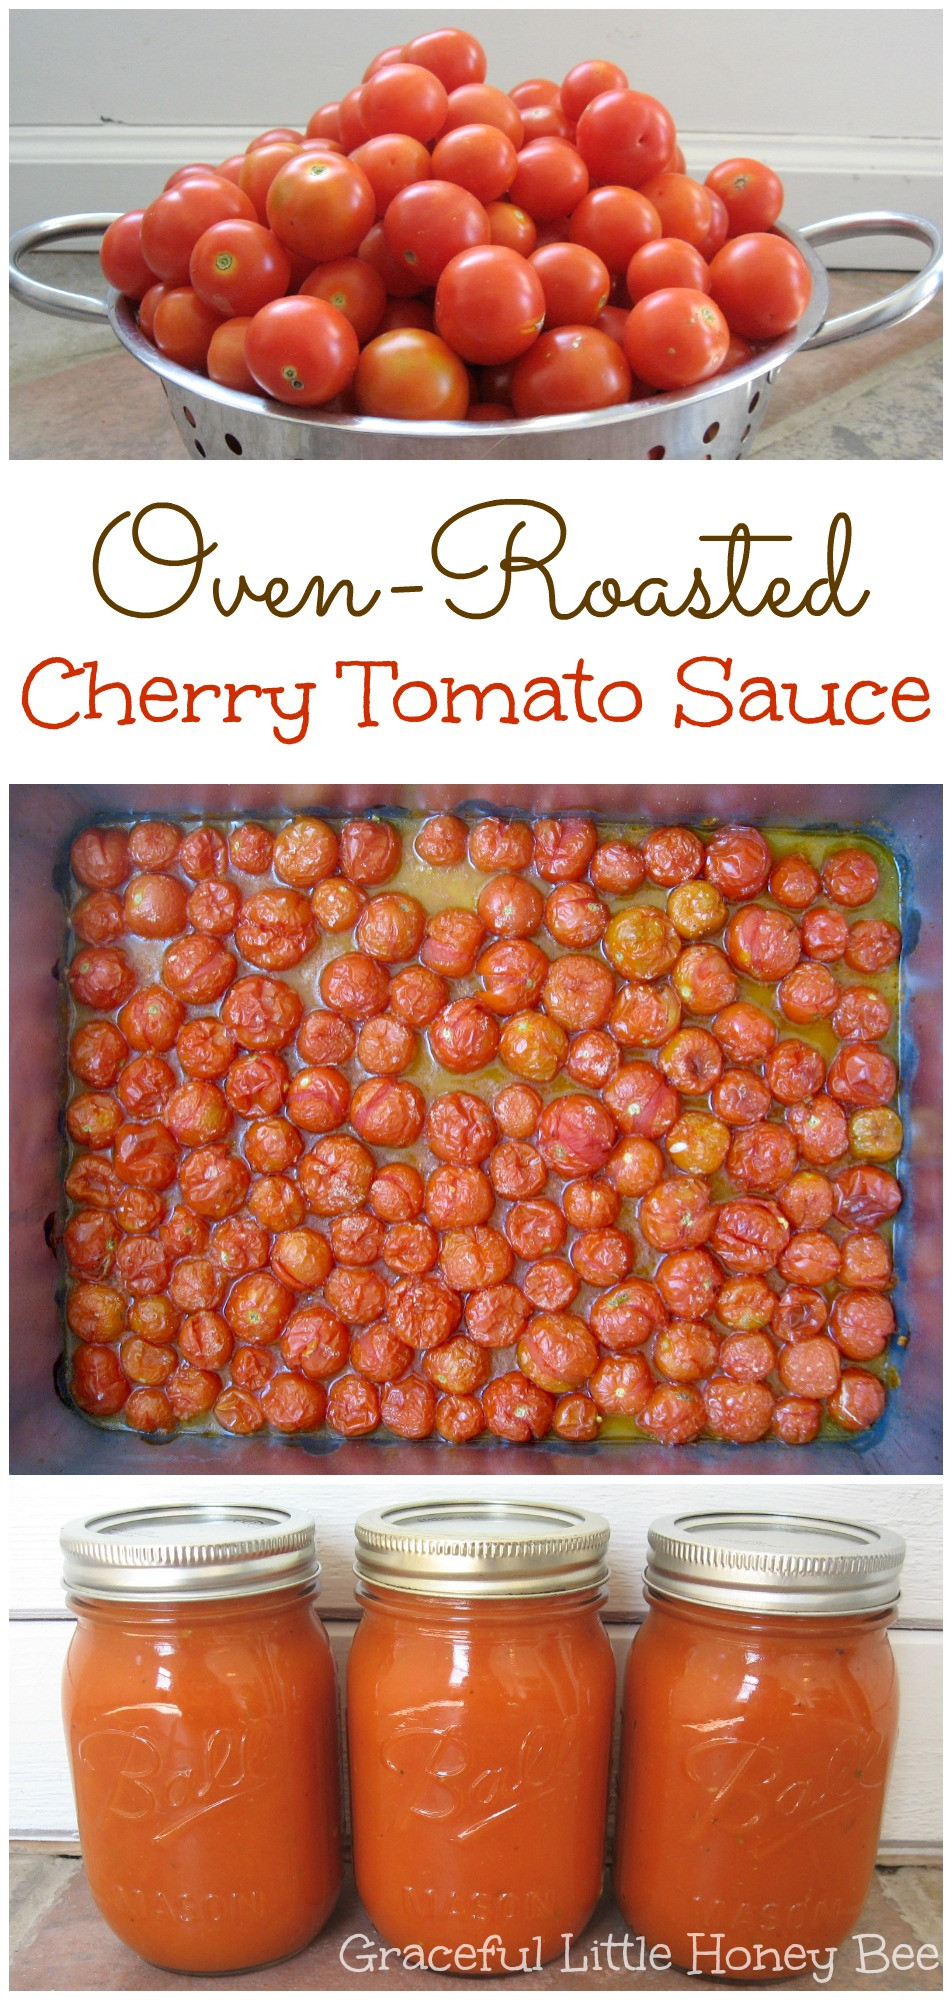 How To Can Tomato Sauce  Oven Roasted Cherry Tomato Sauce Freezer Friendly